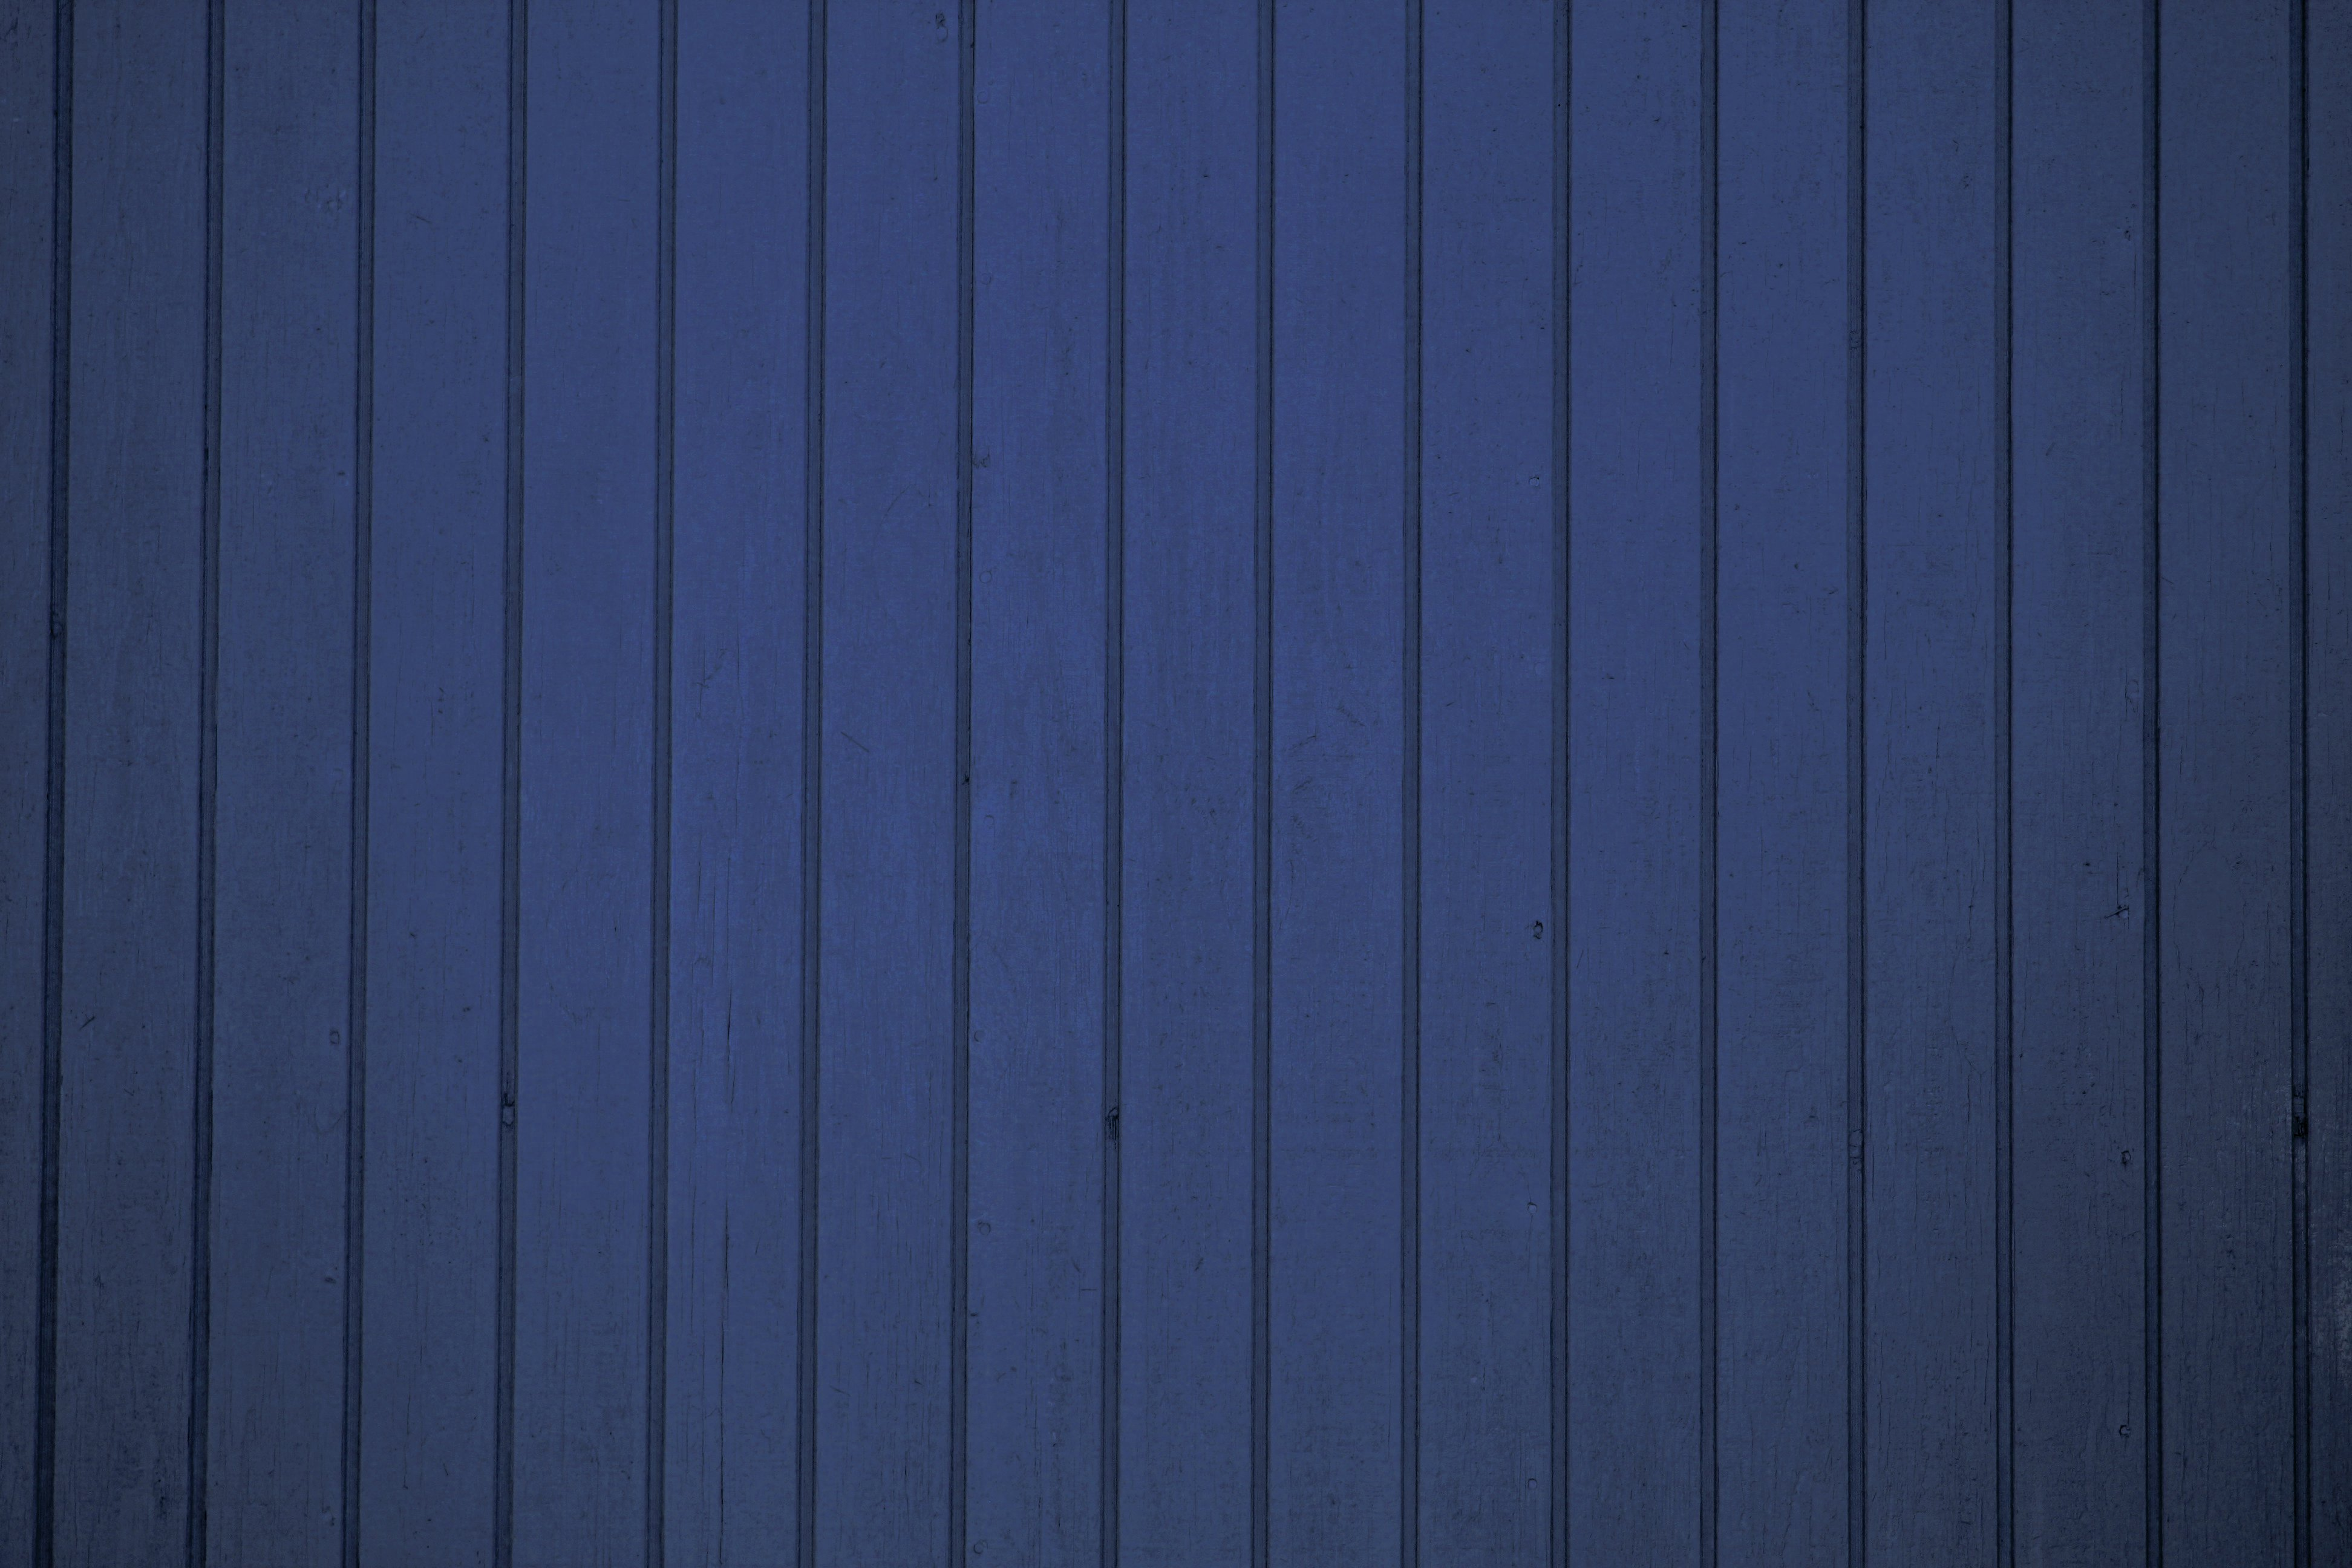 Blue Vertical Siding Texture Picture Free Photograph